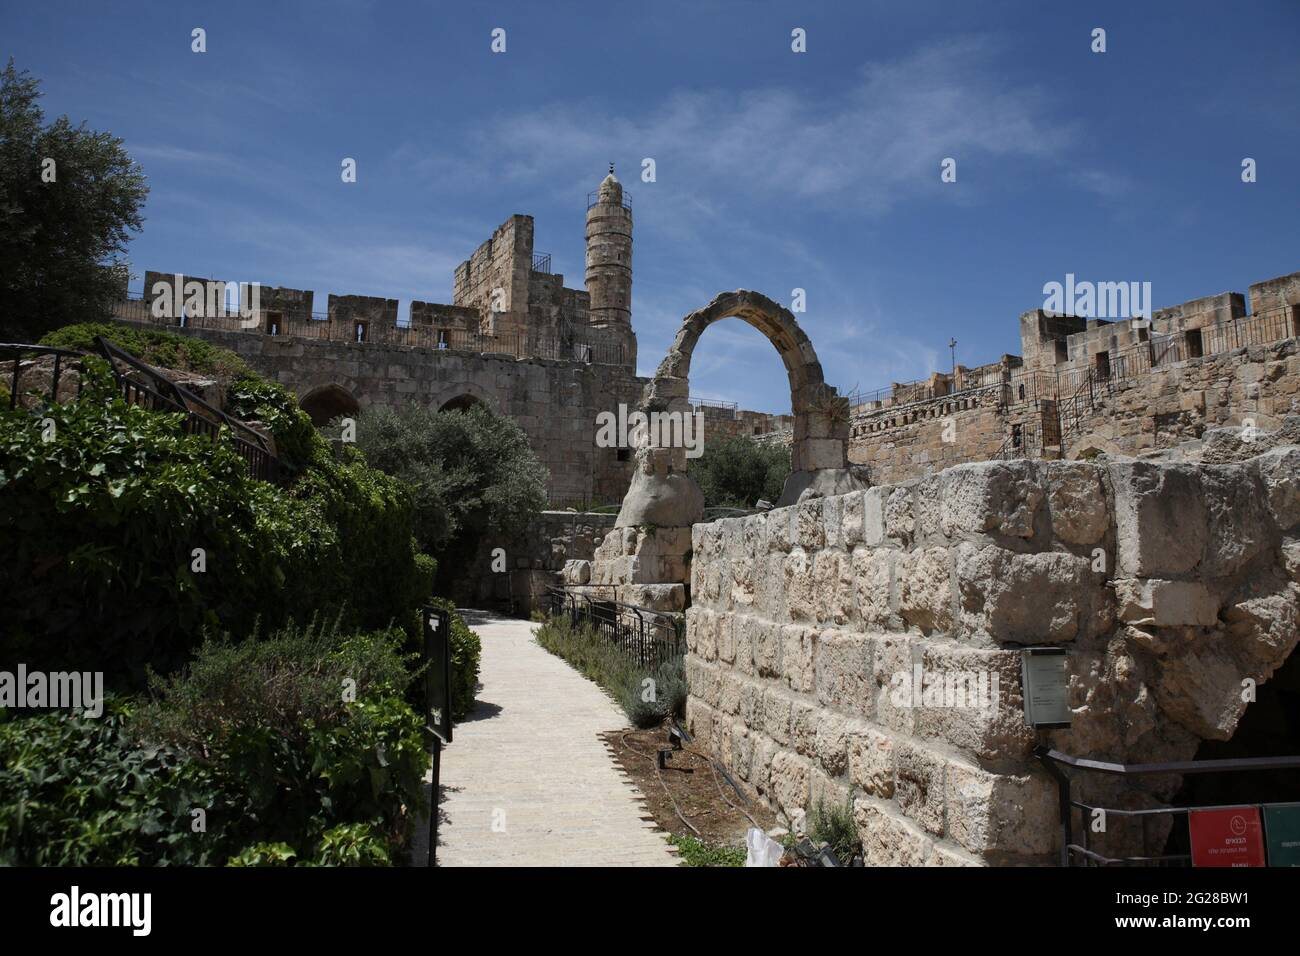 Tower of David or David's Citadel, minaret of a mosque part of the citadel. See in front an arch and wall, remains of more ancient fortifications. Stock Photo